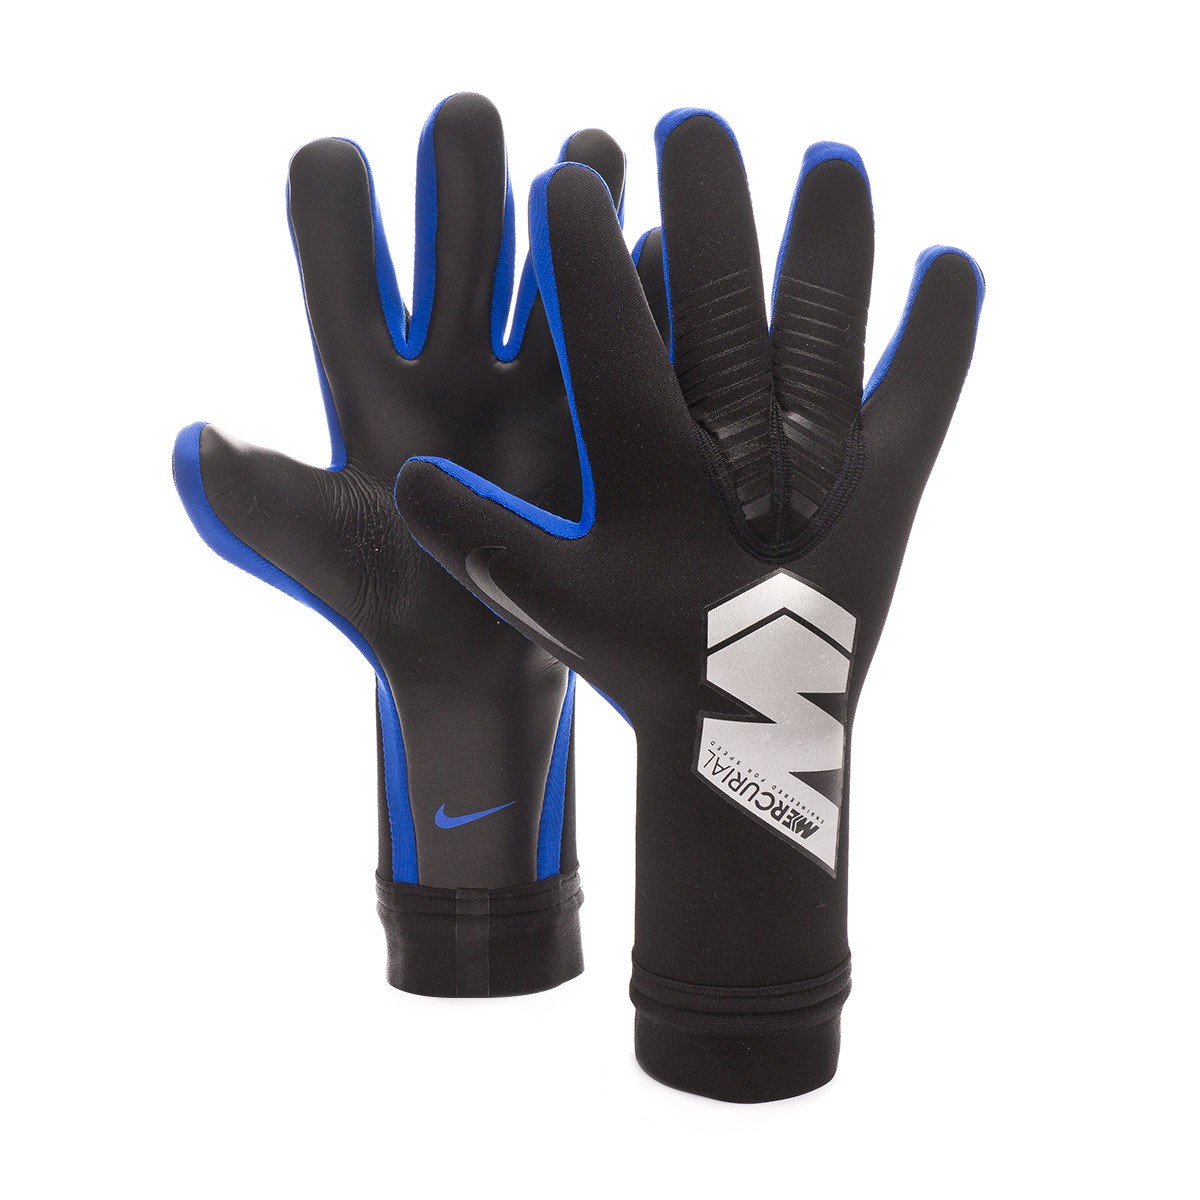 61cb32210f5d0 Glove Nike Mercurial Touch Victory Black-Metallic silver-Racer blue ...